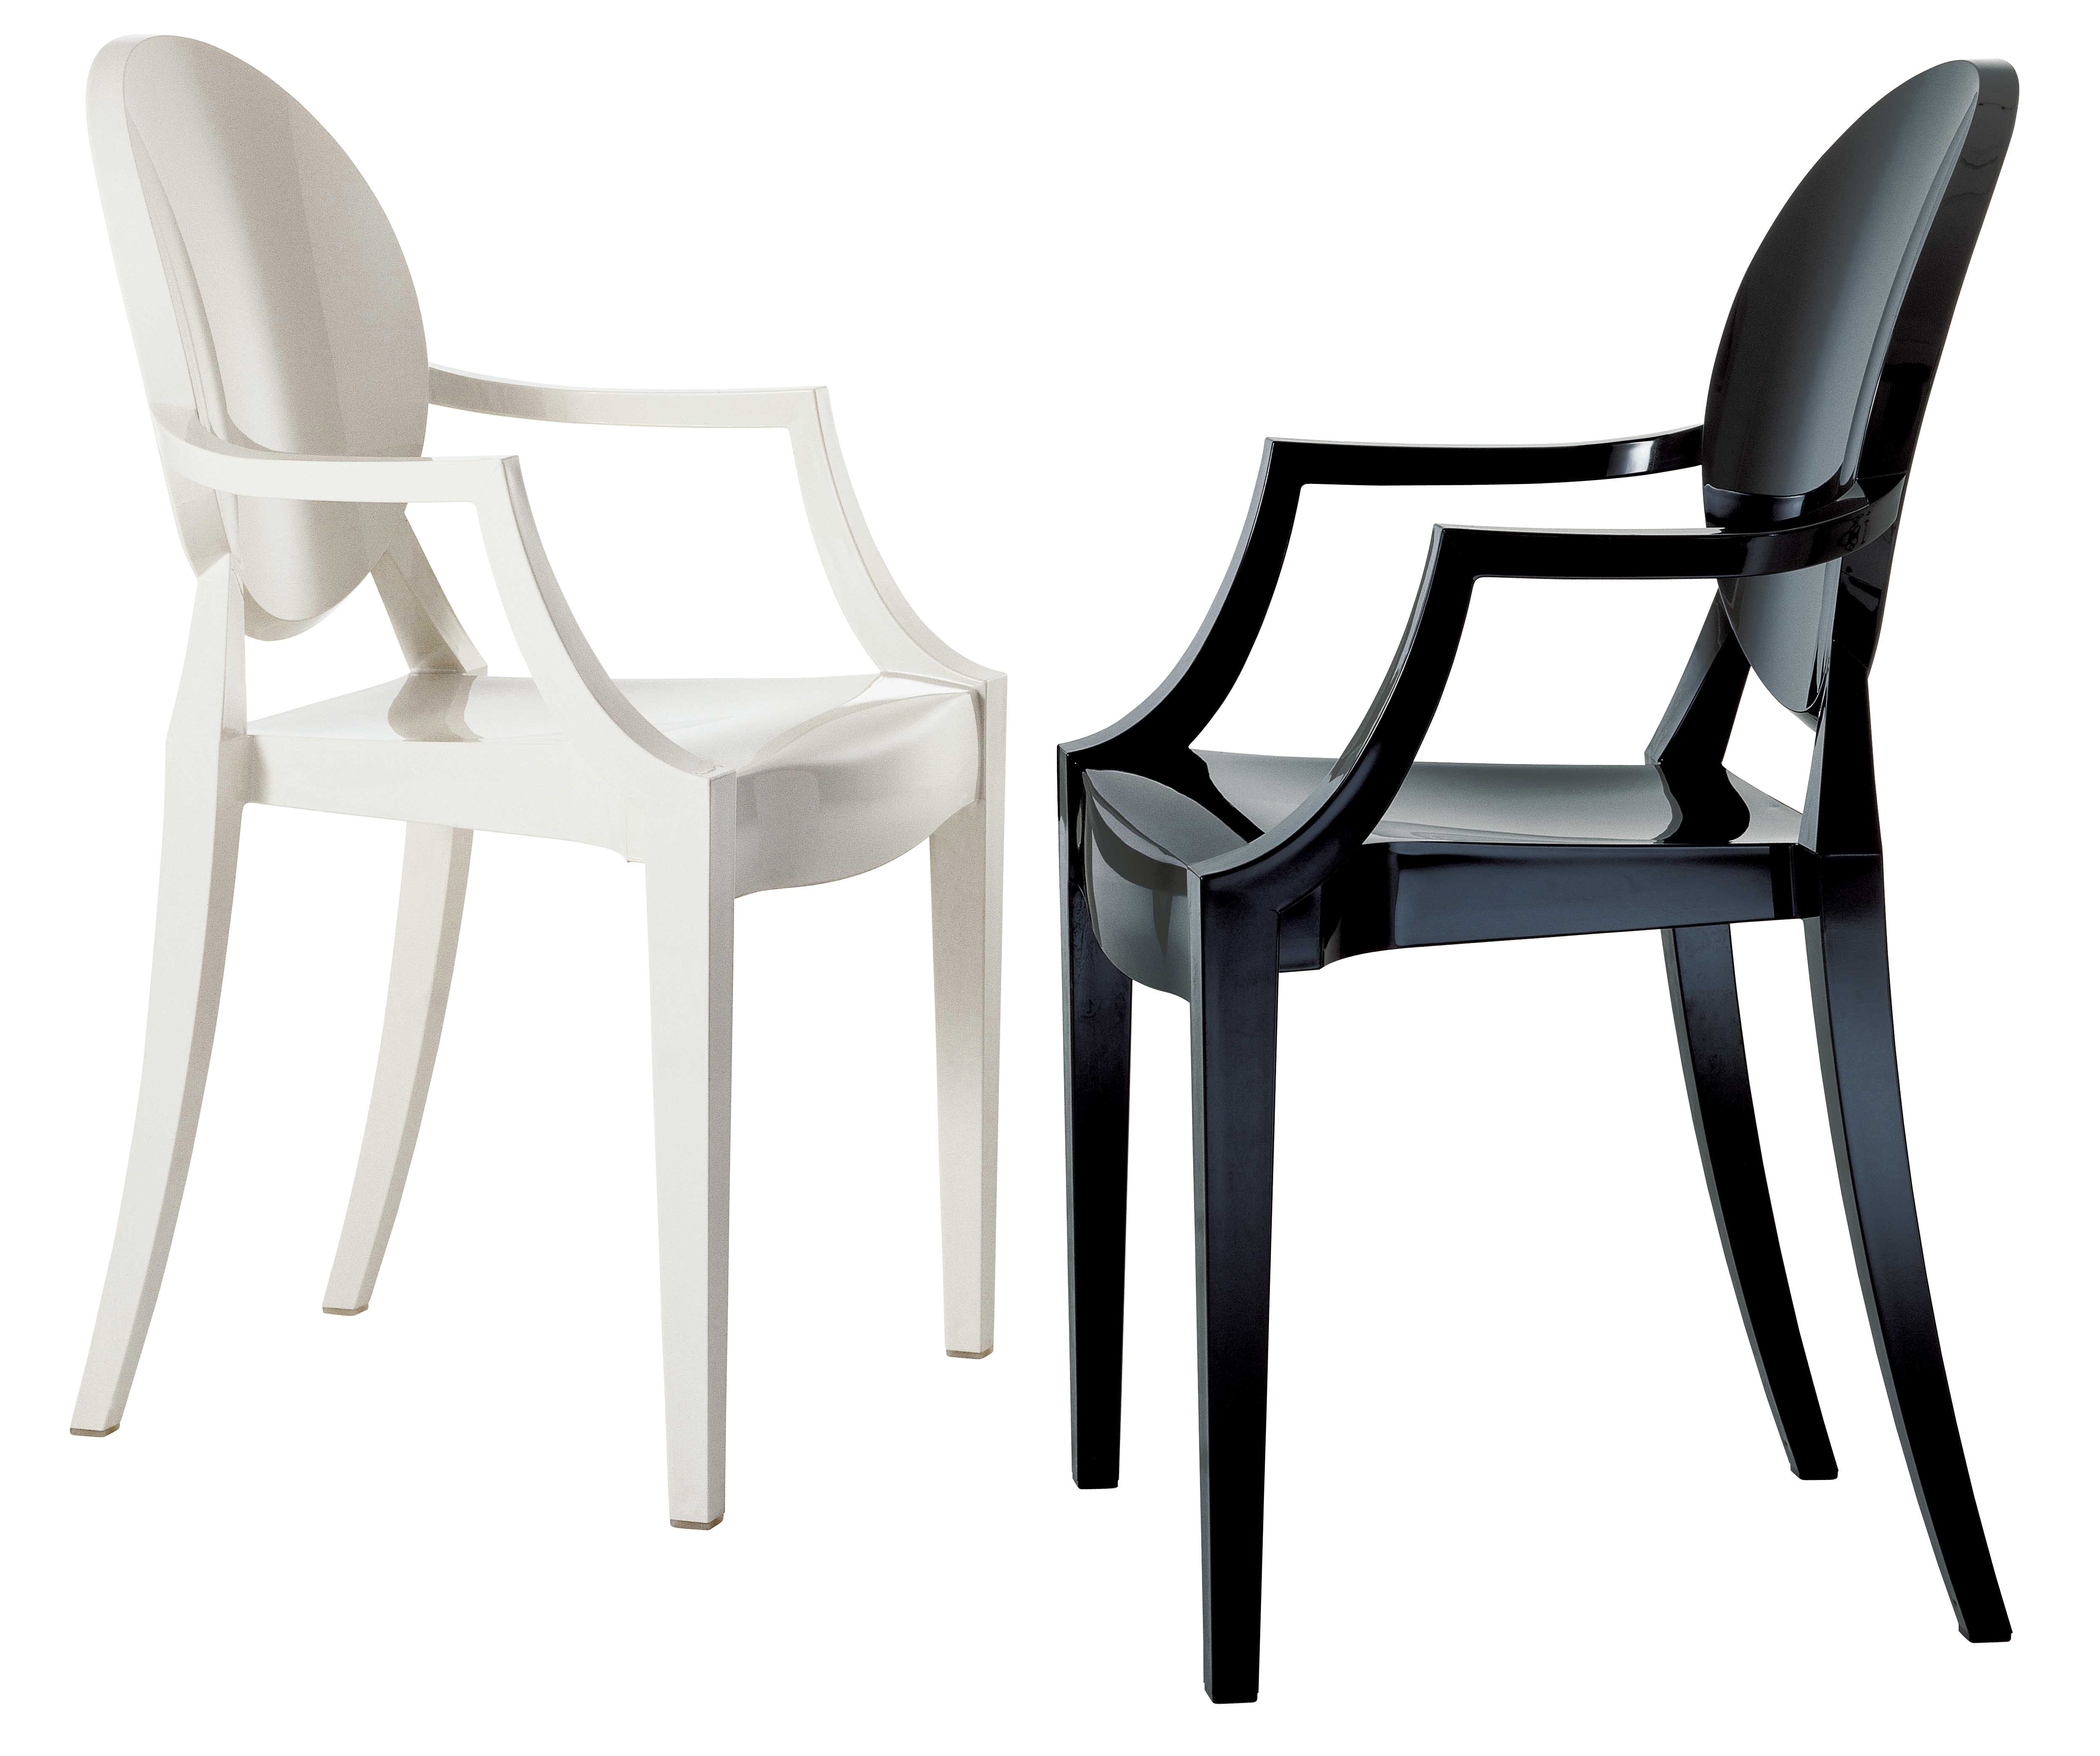 fauteuil empilable louis ghost polycarbonate noir opaque kartell. Black Bedroom Furniture Sets. Home Design Ideas